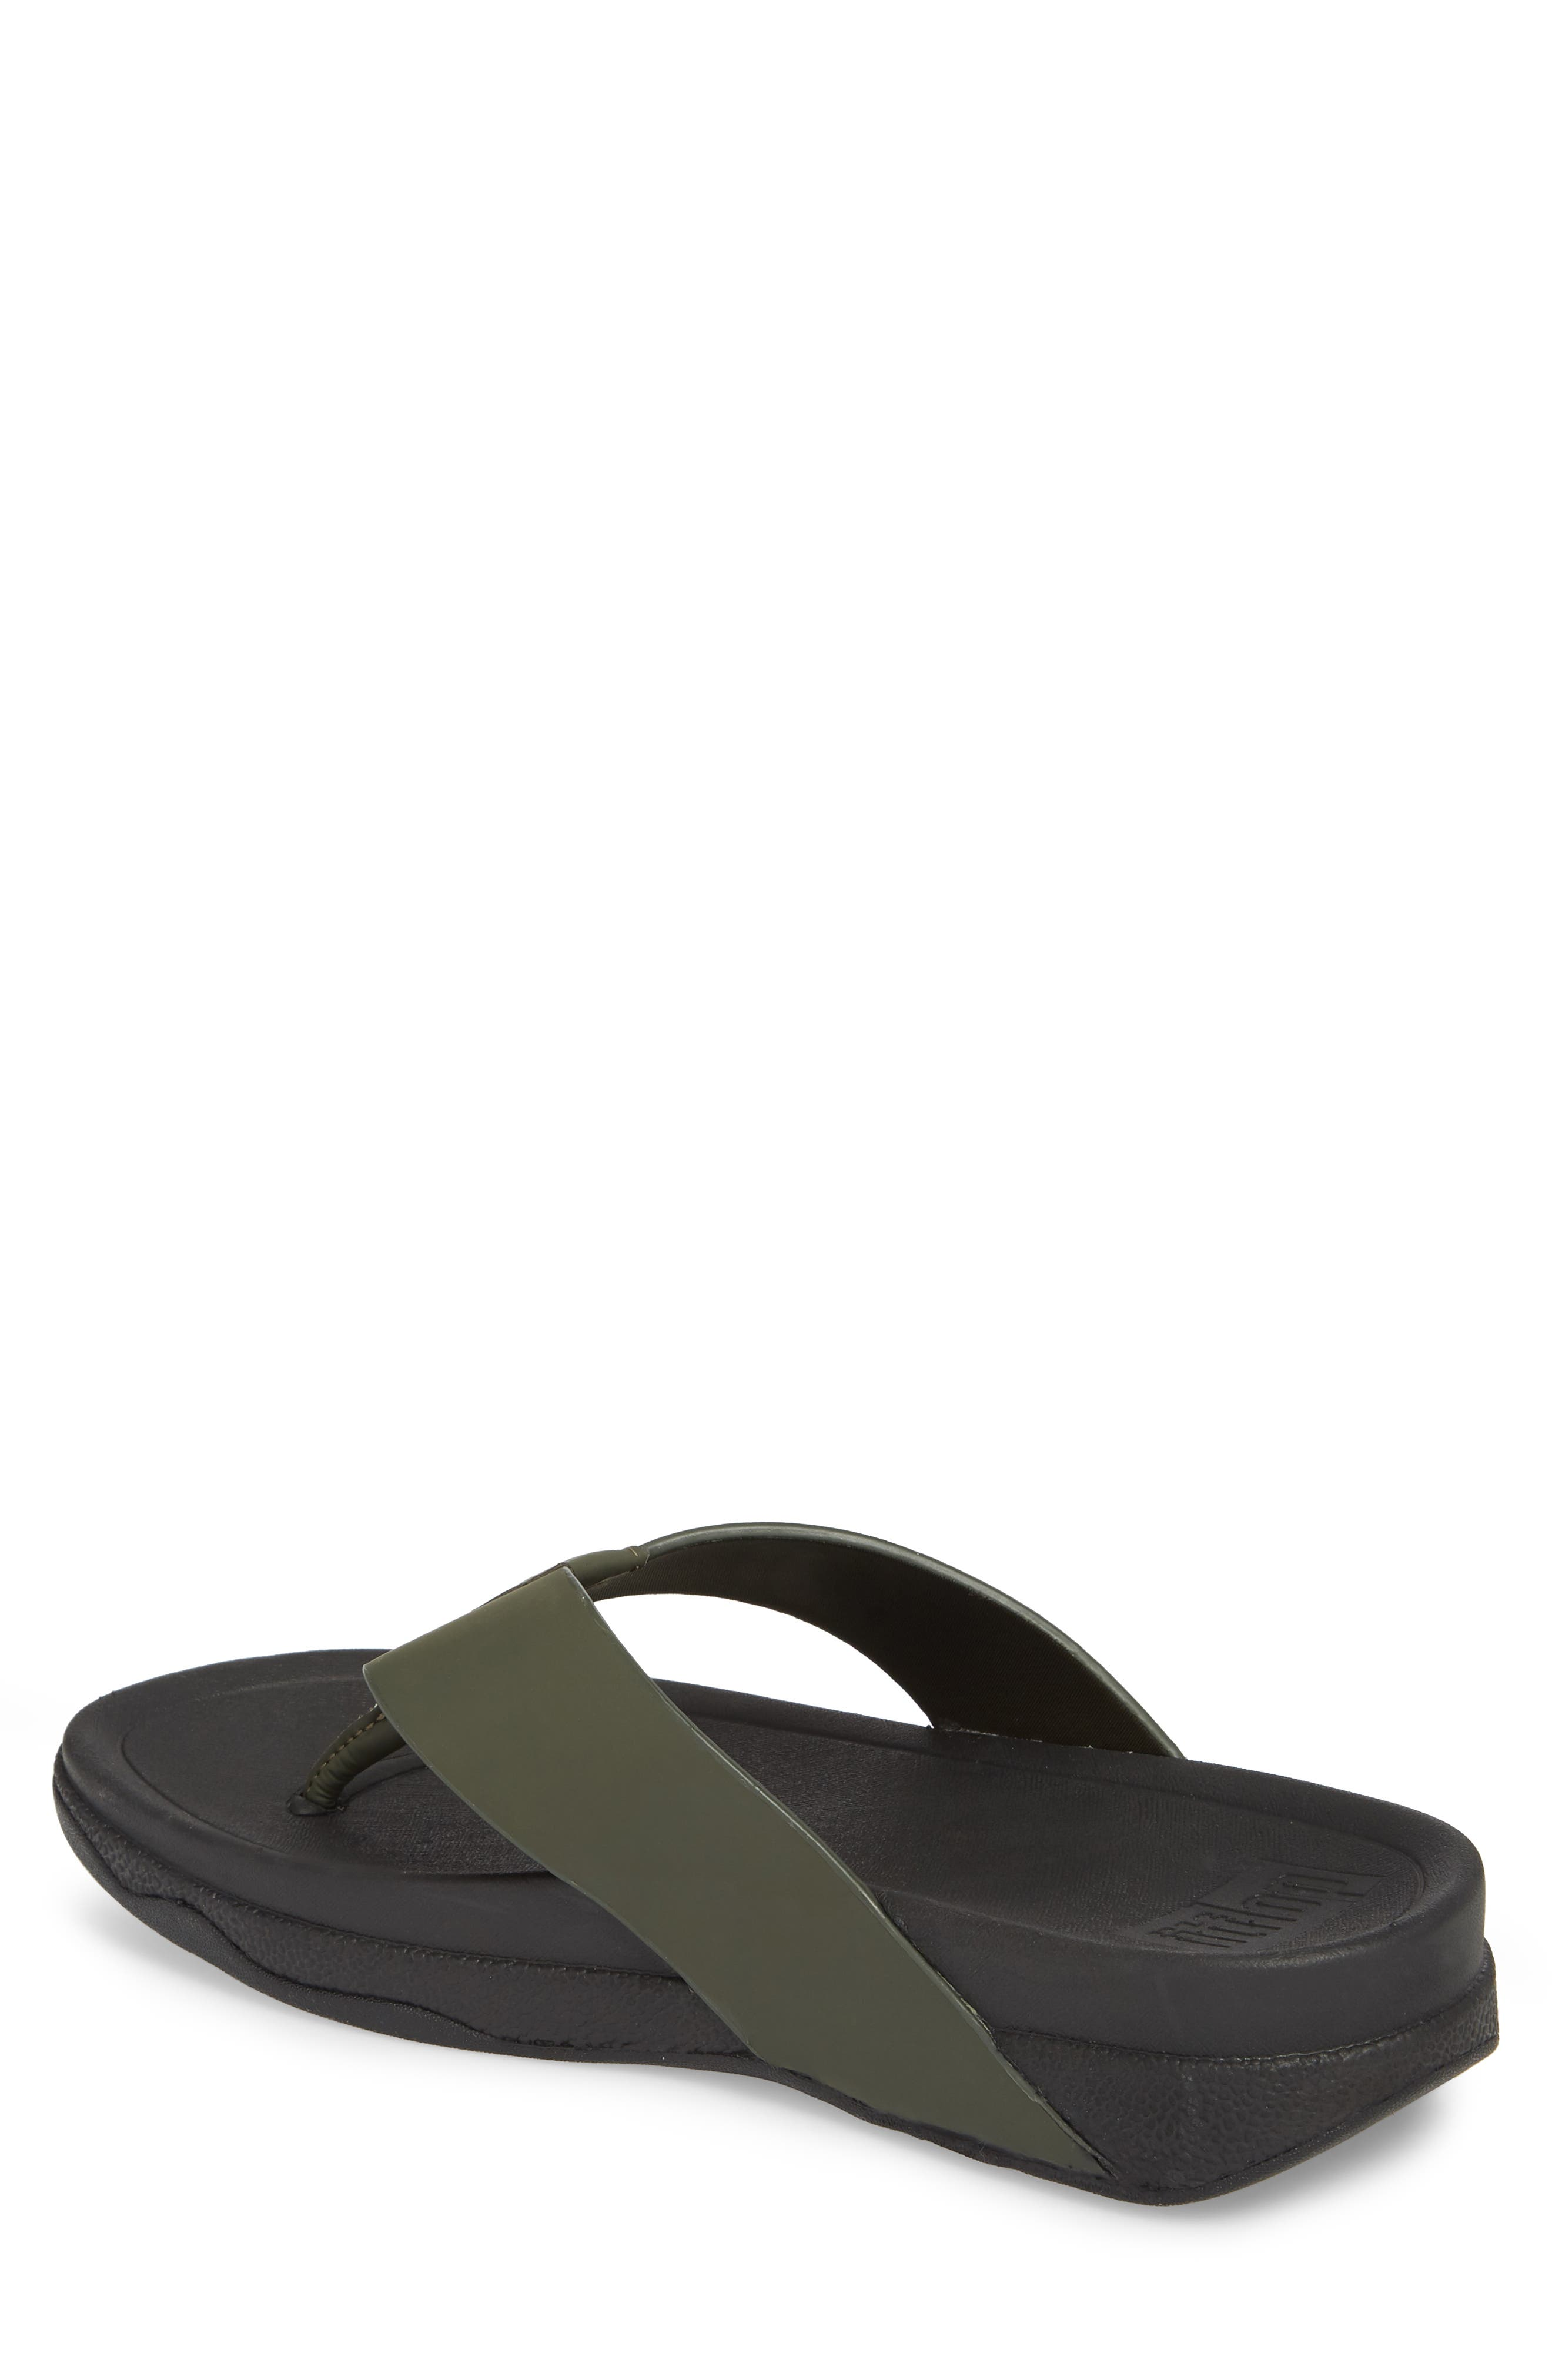 Surfer Toe Flip Flop,                             Alternate thumbnail 2, color,                             Camouflage Green